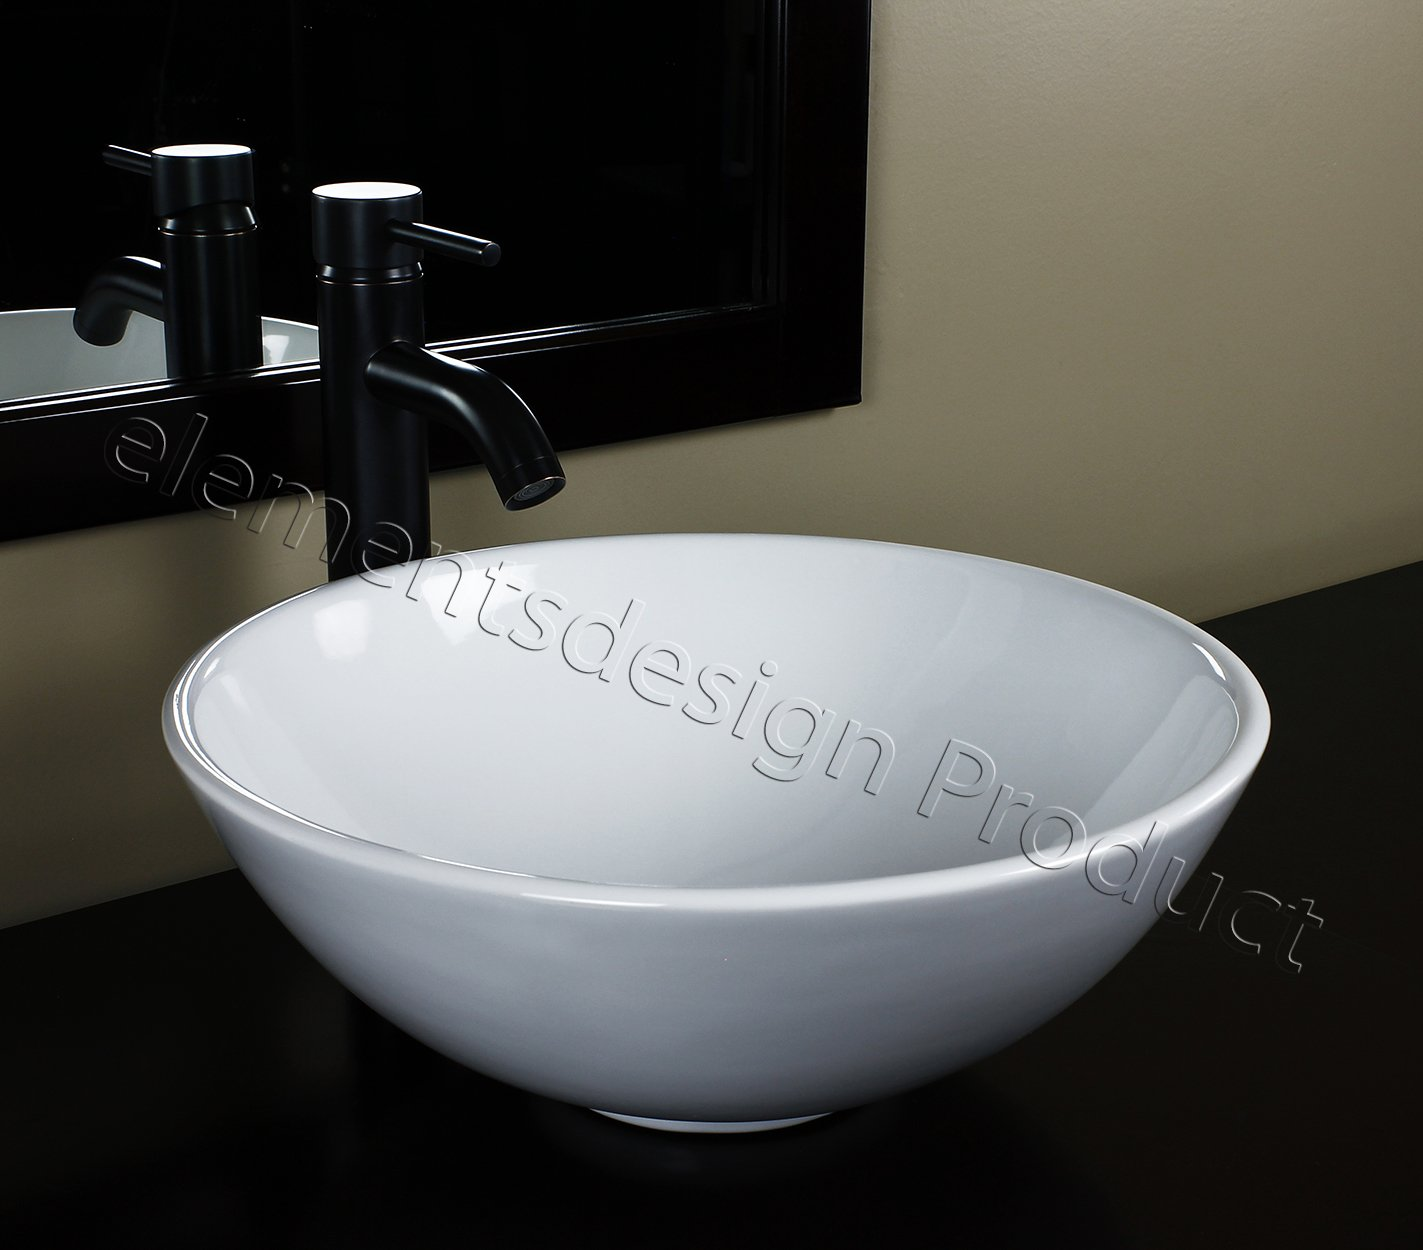 Bathroom Ceramic Porcelain Vessel Sink CV7226E3 Oil Bronze Faucet Drain